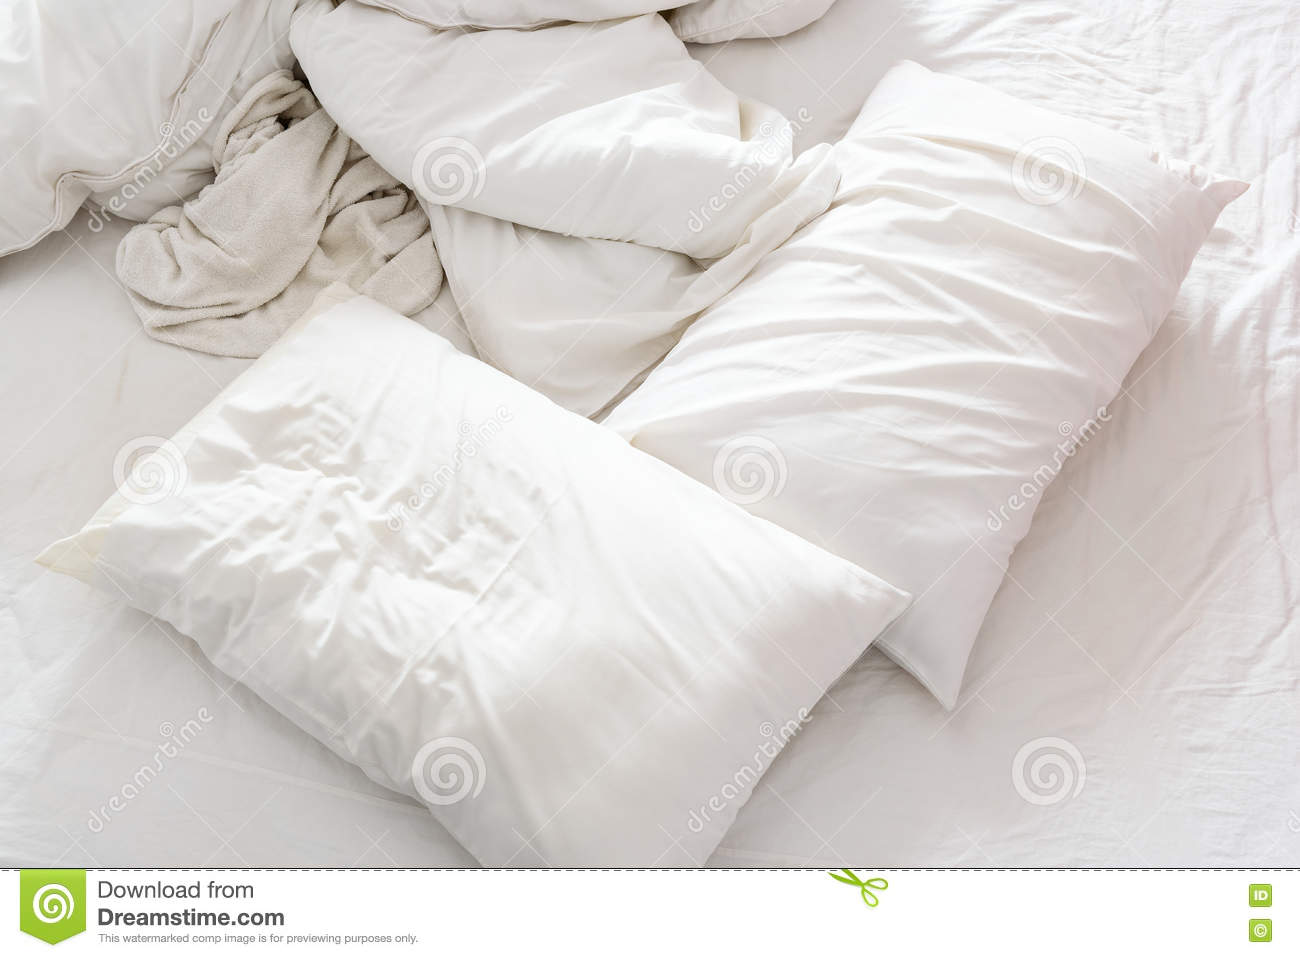 Rumpled bed sheet - Top View Of An Unmade Bed In A Bedroom With Crumpled Bed Sheet Royalty Free